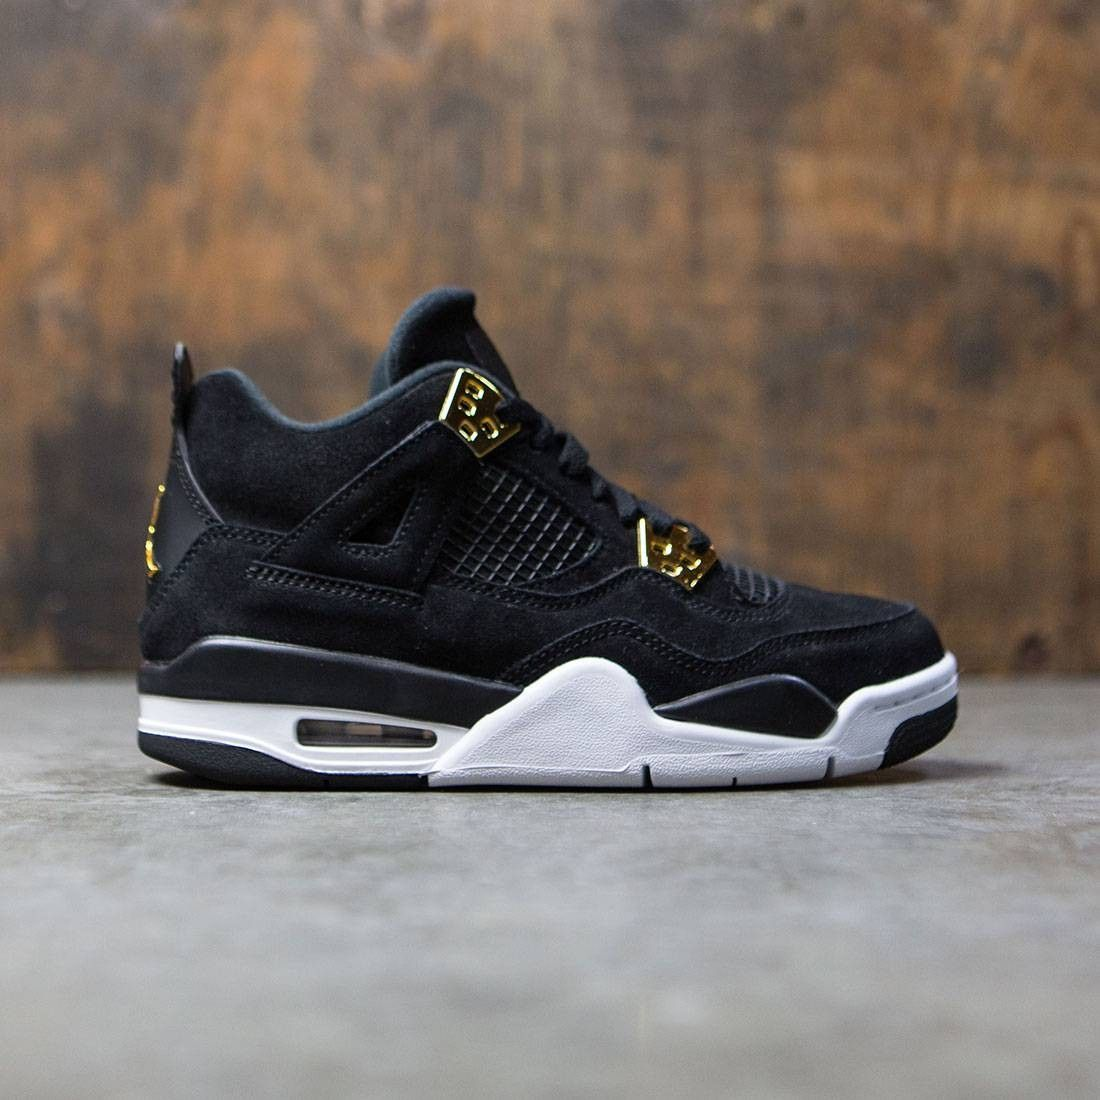 timeless design eb4f1 aefe5 Air Jordan IV Retro Big Kids (black   metallic gold-white)